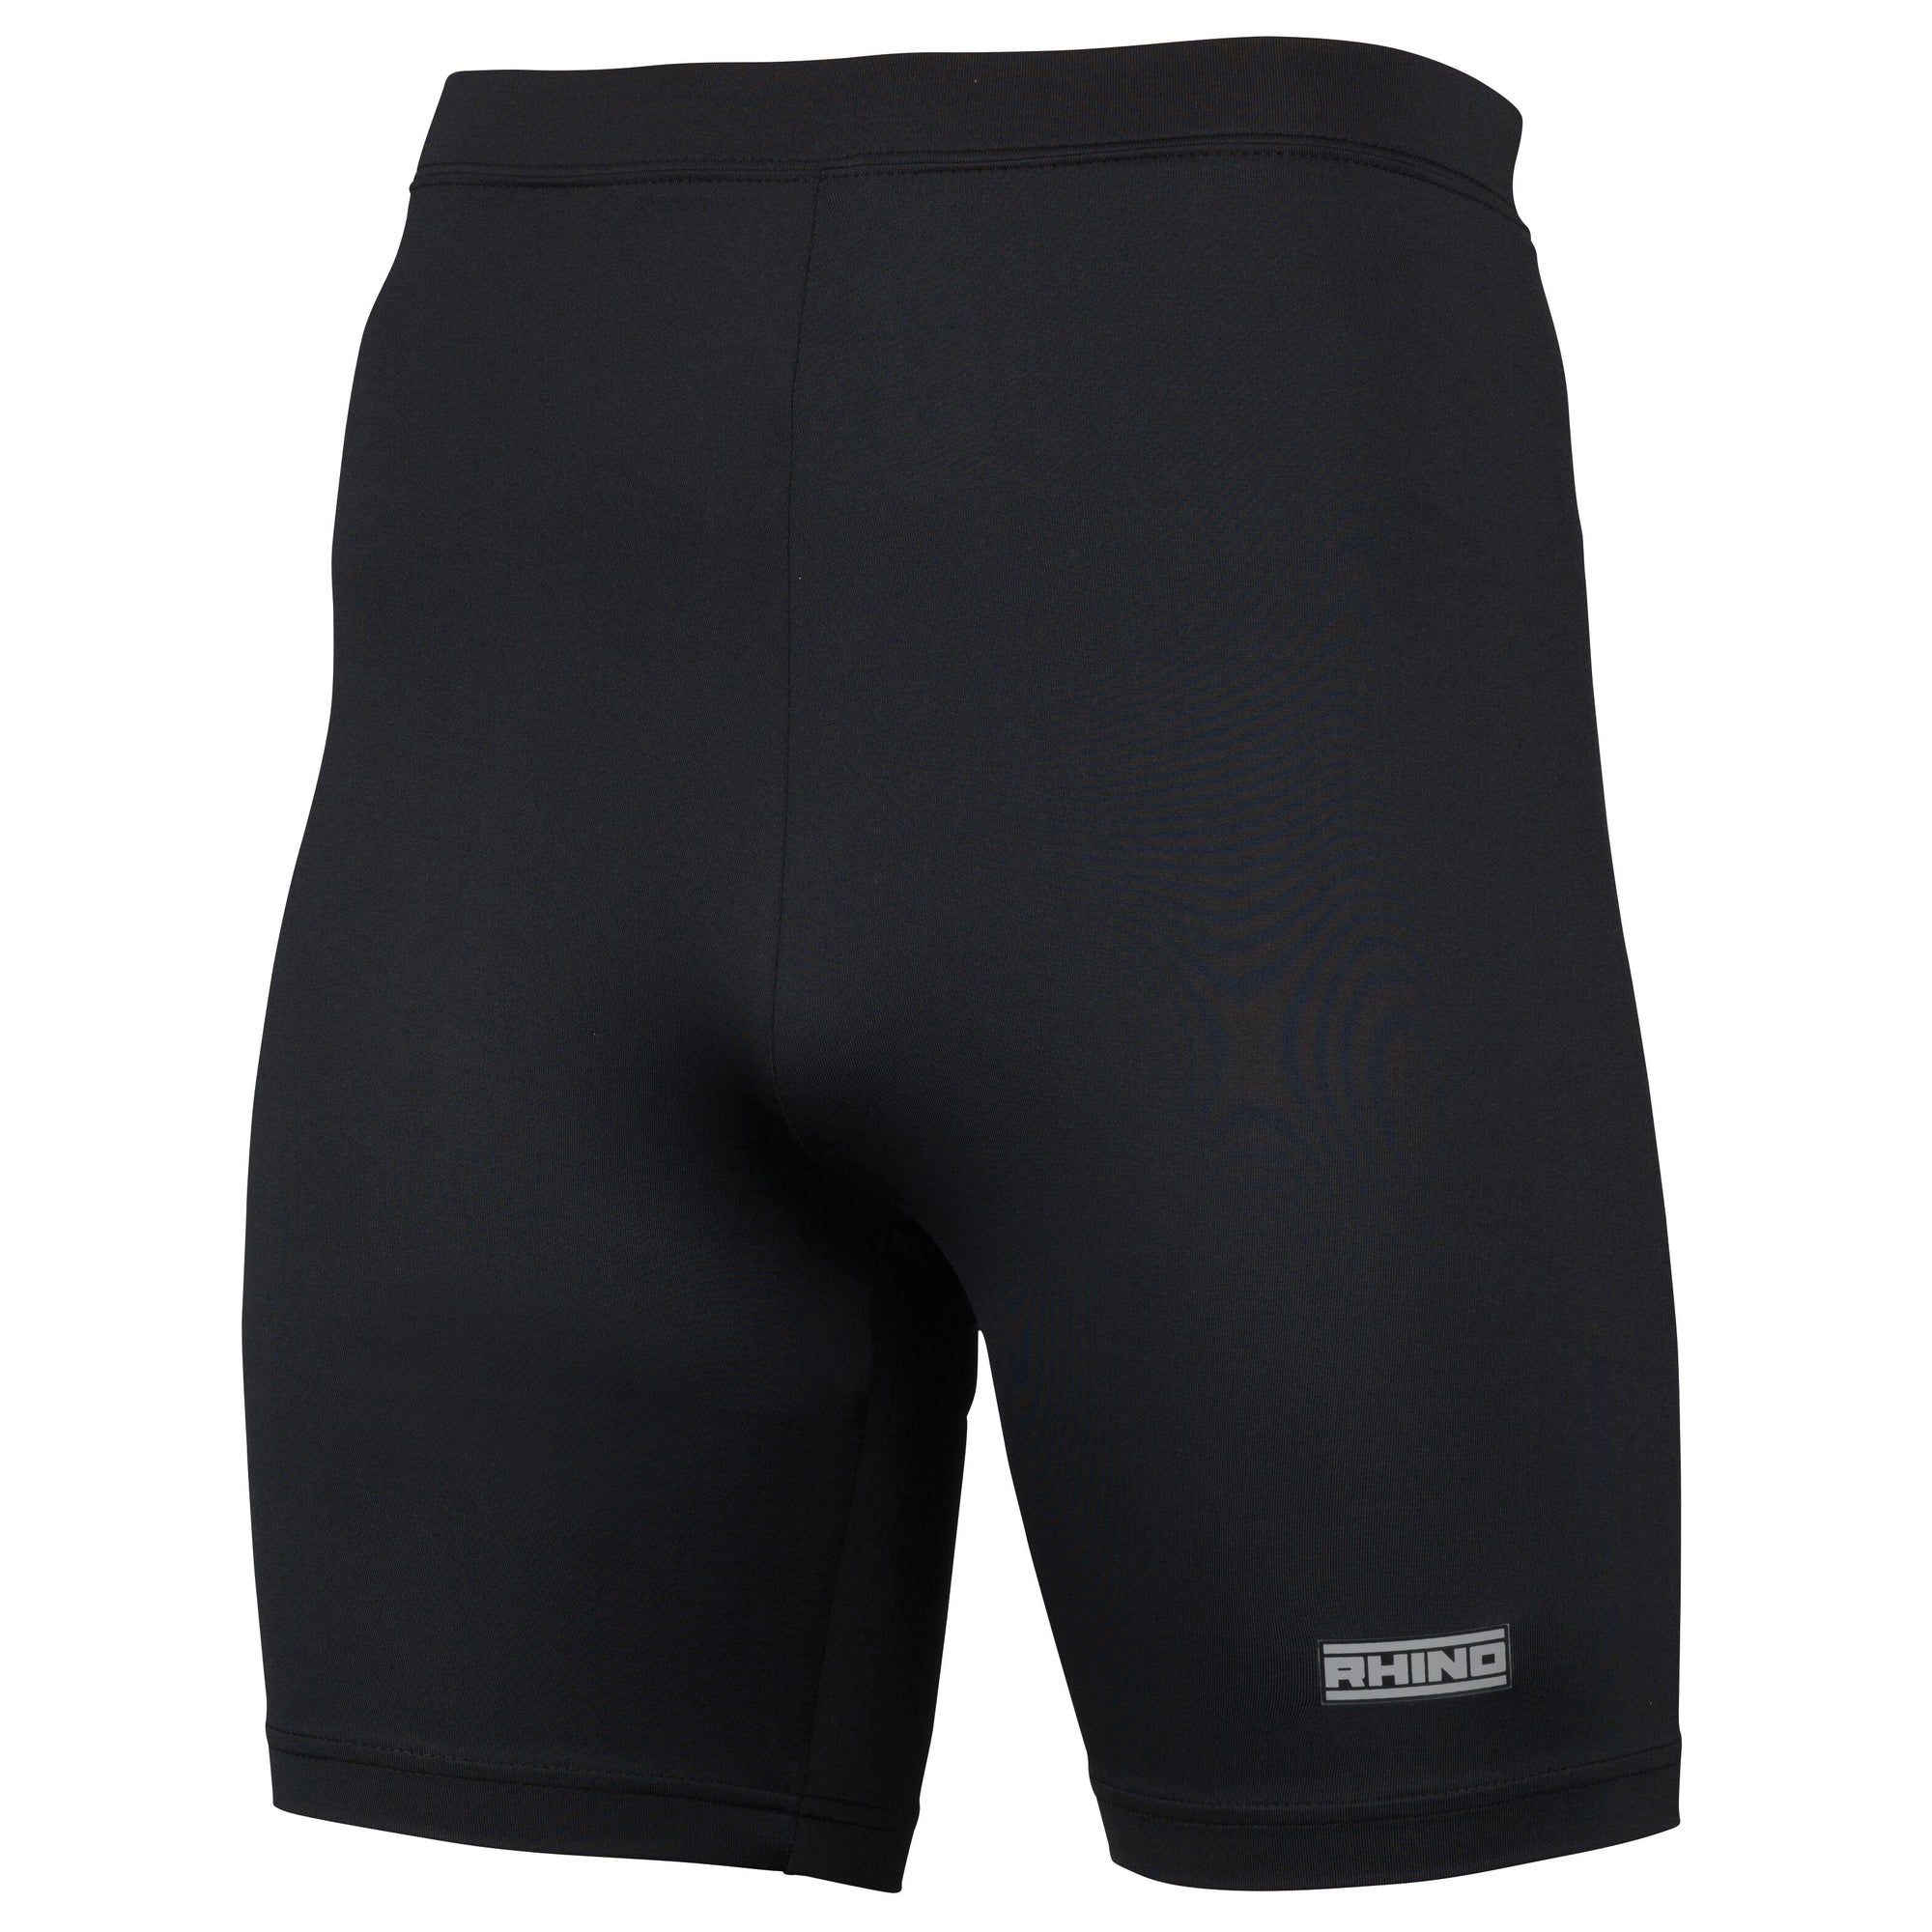 Bournemouth Sports Home Undershorts Black